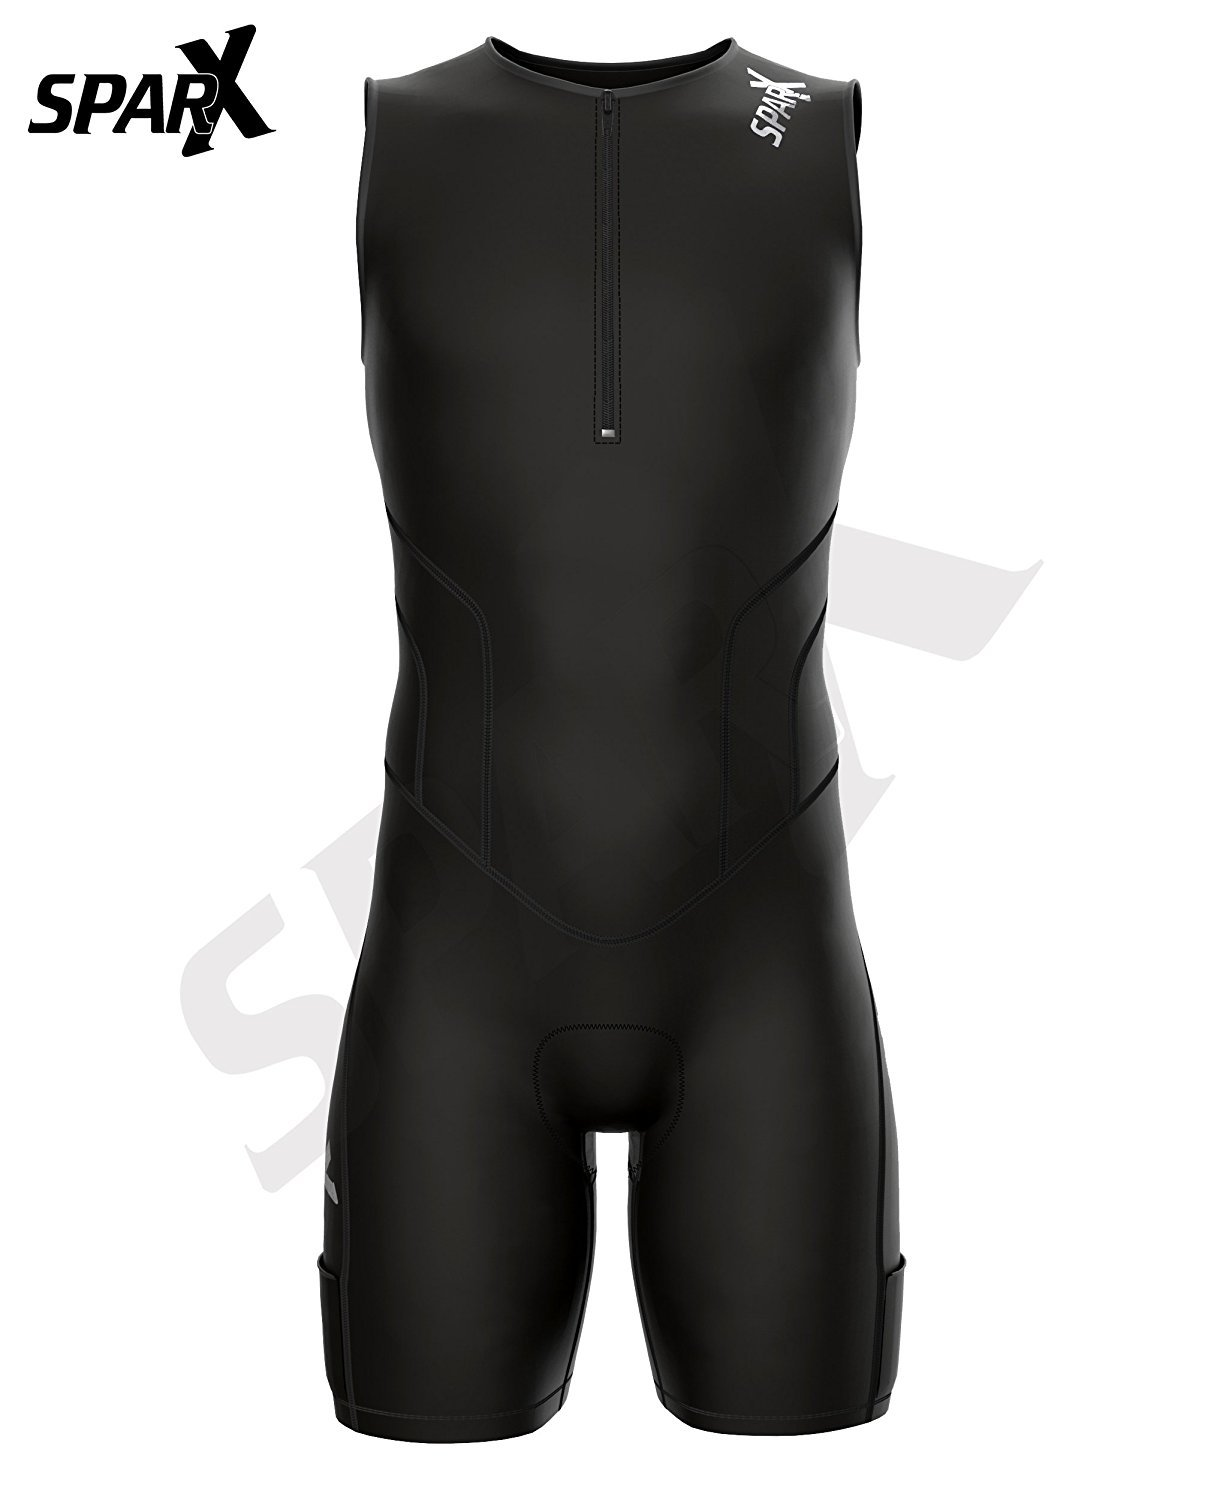 Sparx X Triathlon Suit Men Racing Tri Cycling Skin Suit Bike Swim Run (Black, 3XL) by Sparx Sports (Image #2)